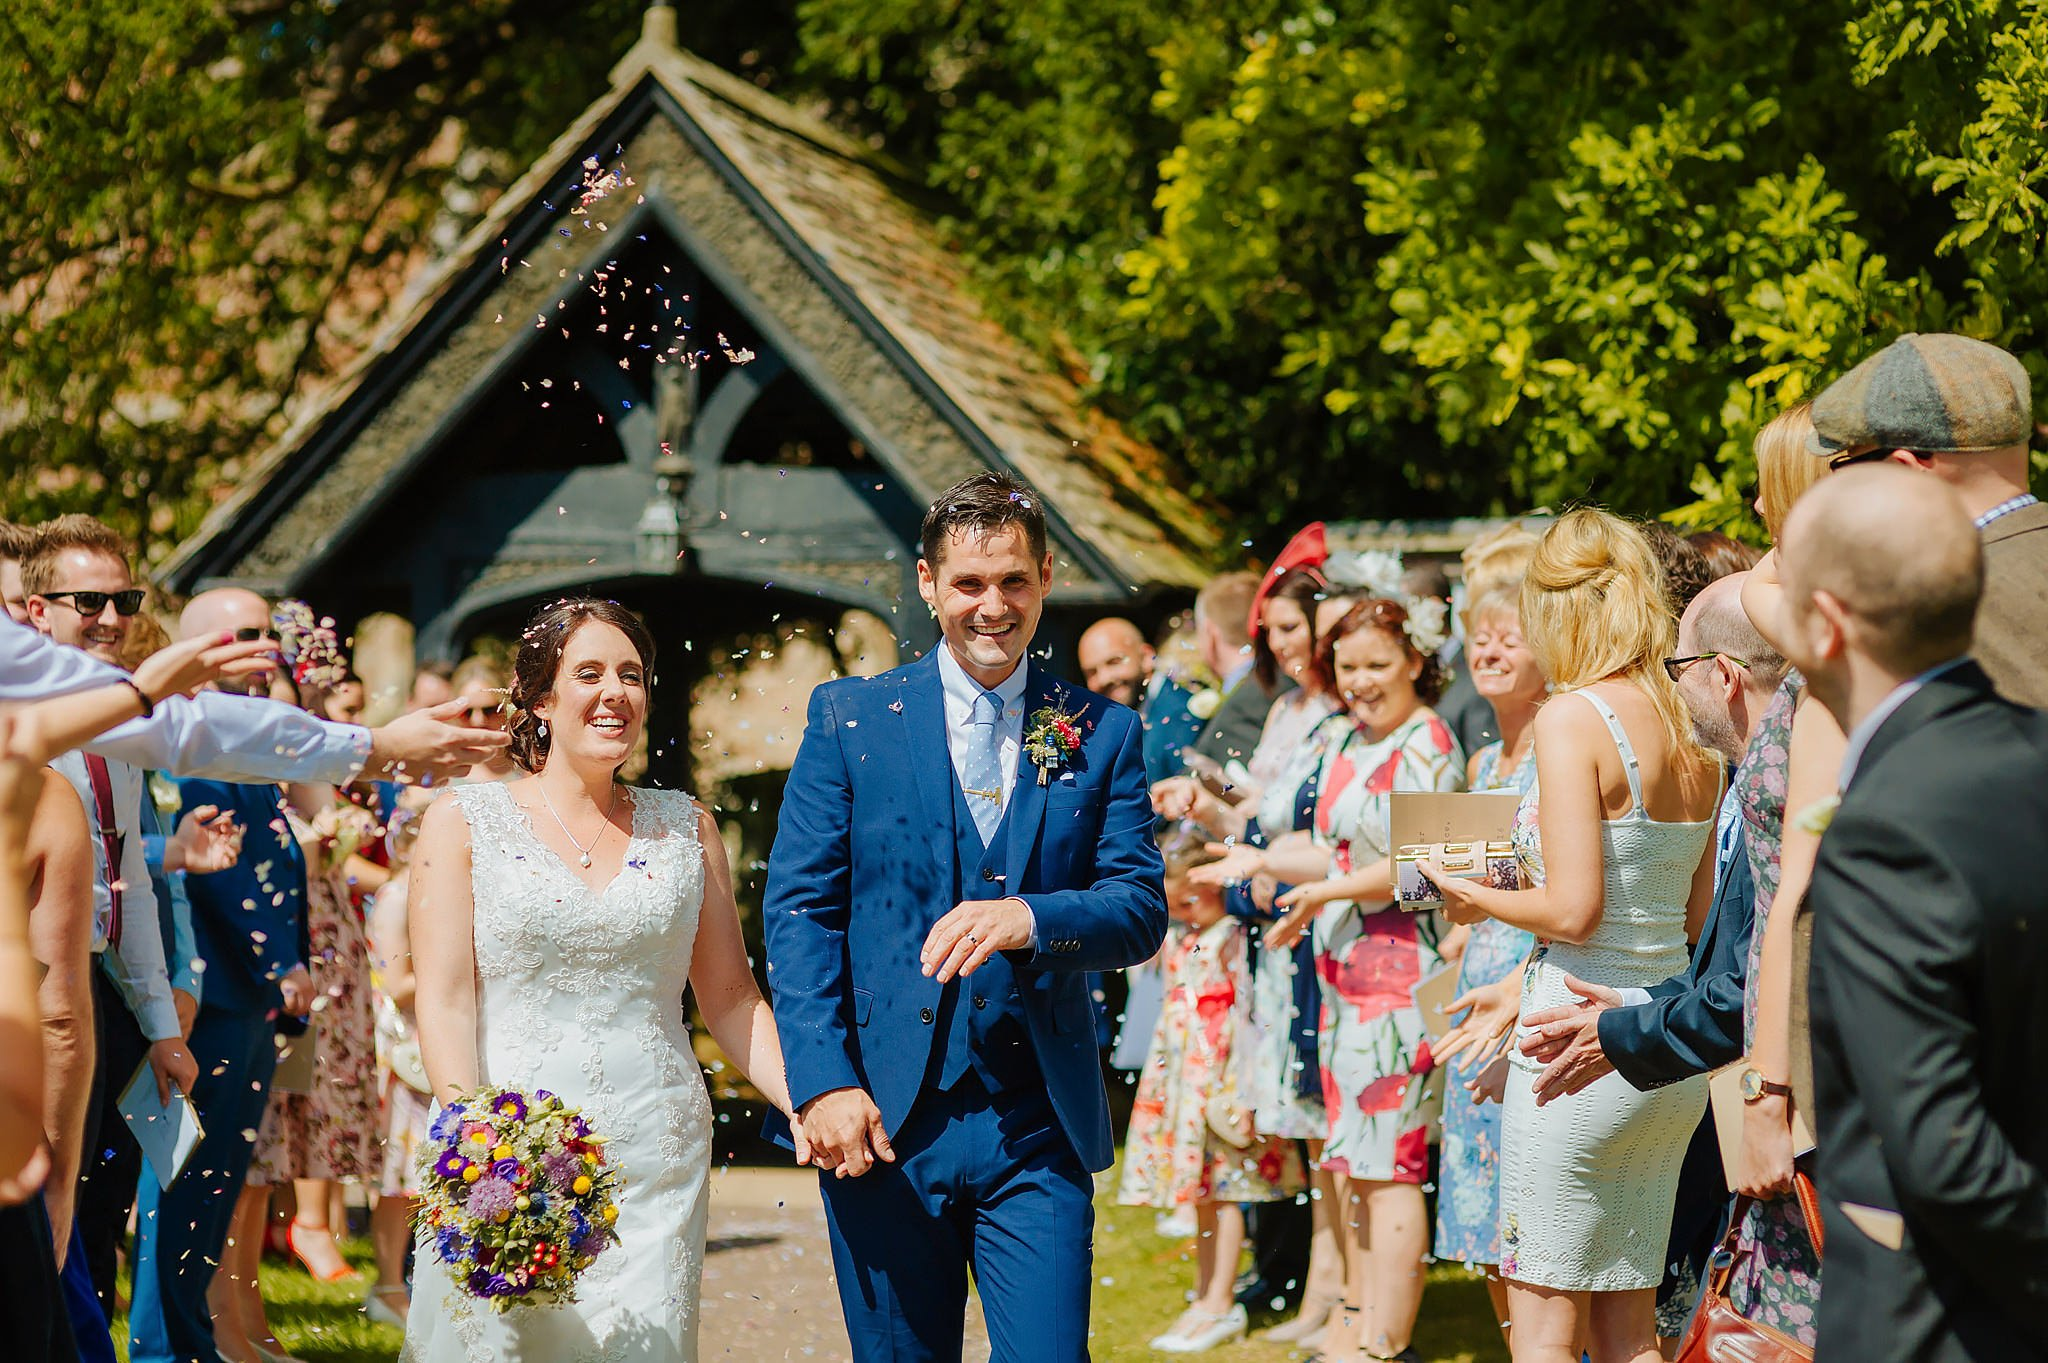 Wedding photography at Hellens Manor in Herefordshire, West Midlands | Shelley + Ian 35